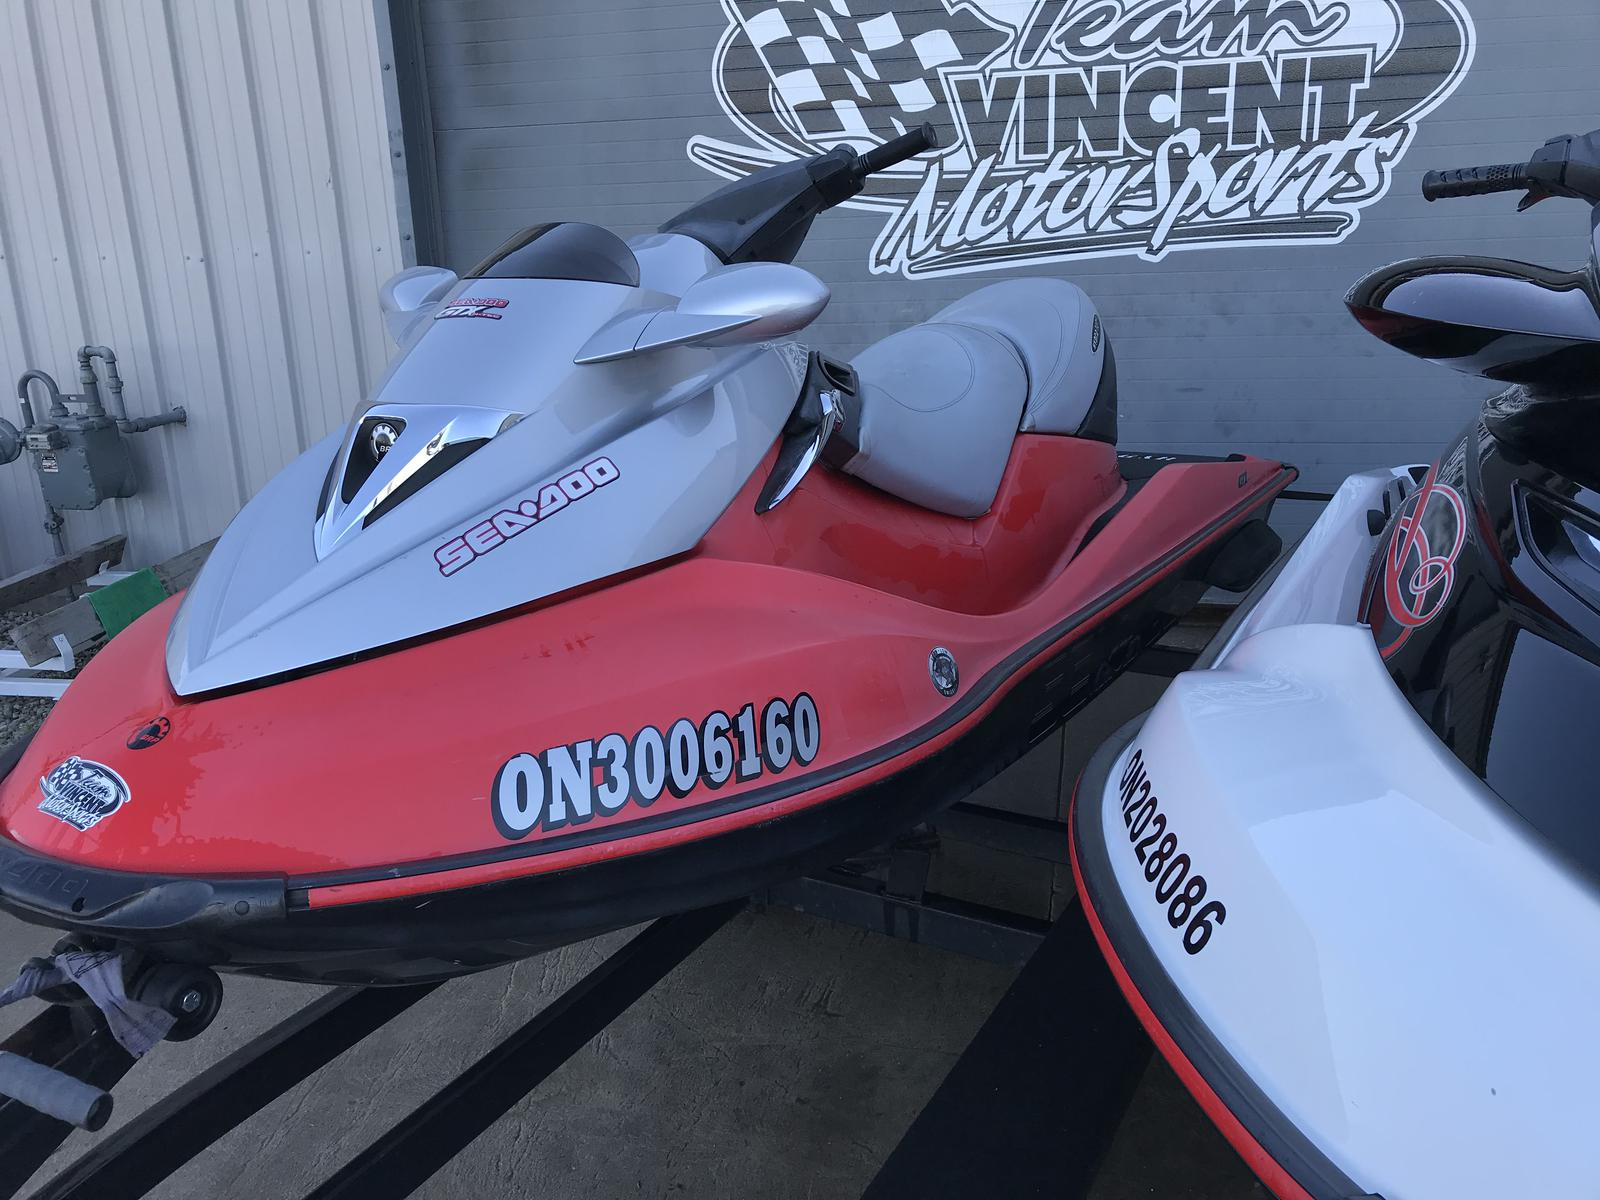 For Sale: 2003 Sea Doo Pwc Gtx 185 S/c ft<br/>Team Vincent Motorsports Inc